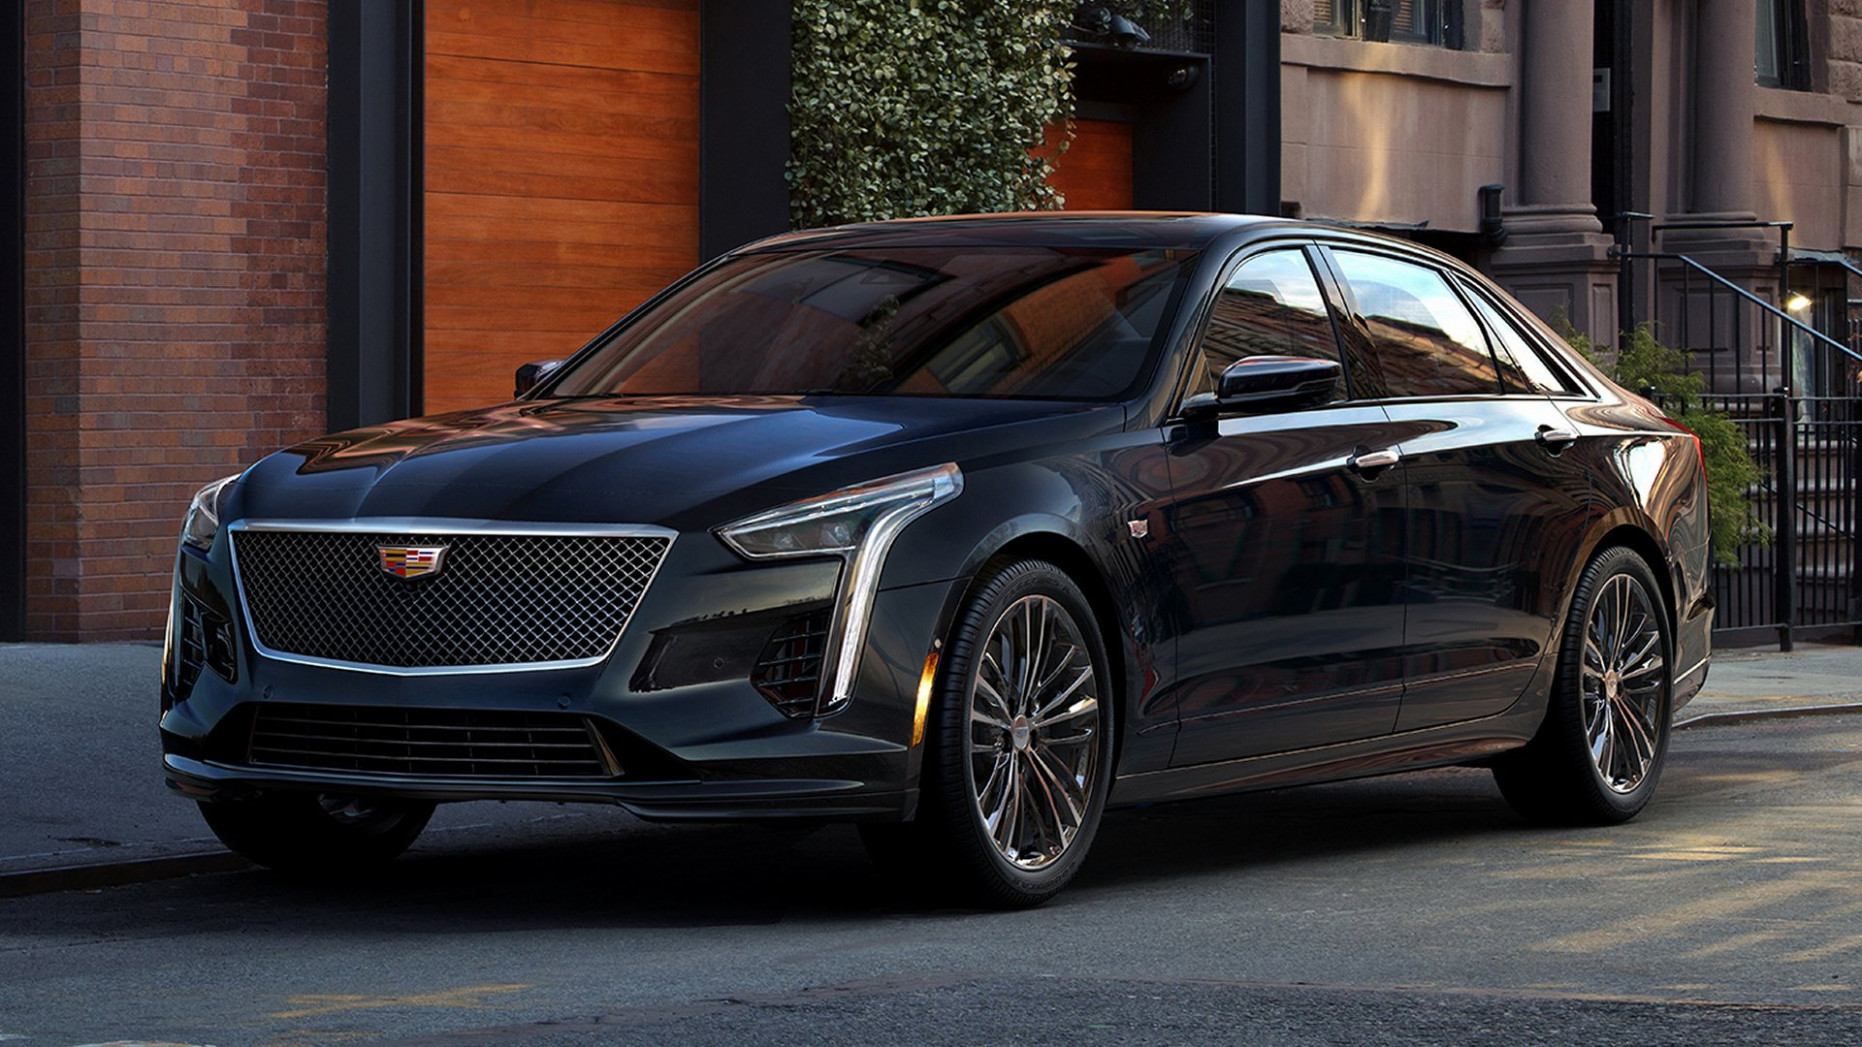 Redesign and Concept 2022 Cadillac Dts